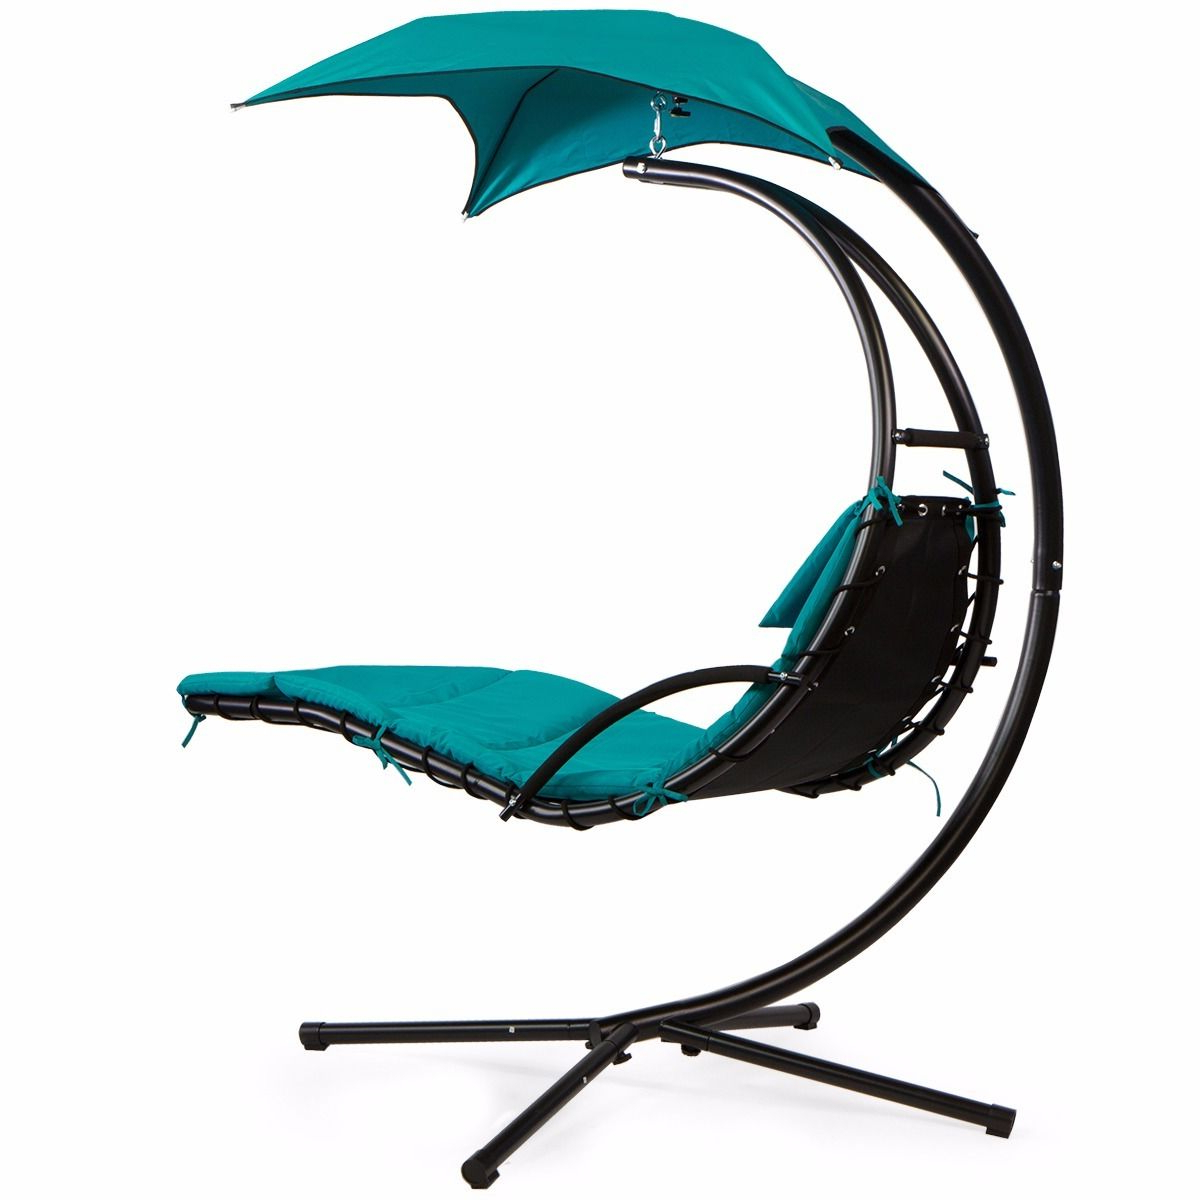 Most Recent Details About Barton Patio Hanging Helicopter Dream Lounger Chair Stand Swing Hammock Chair For Outdoor Pvc Coated Polyester Porch Swings With Stand (View 19 of 30)